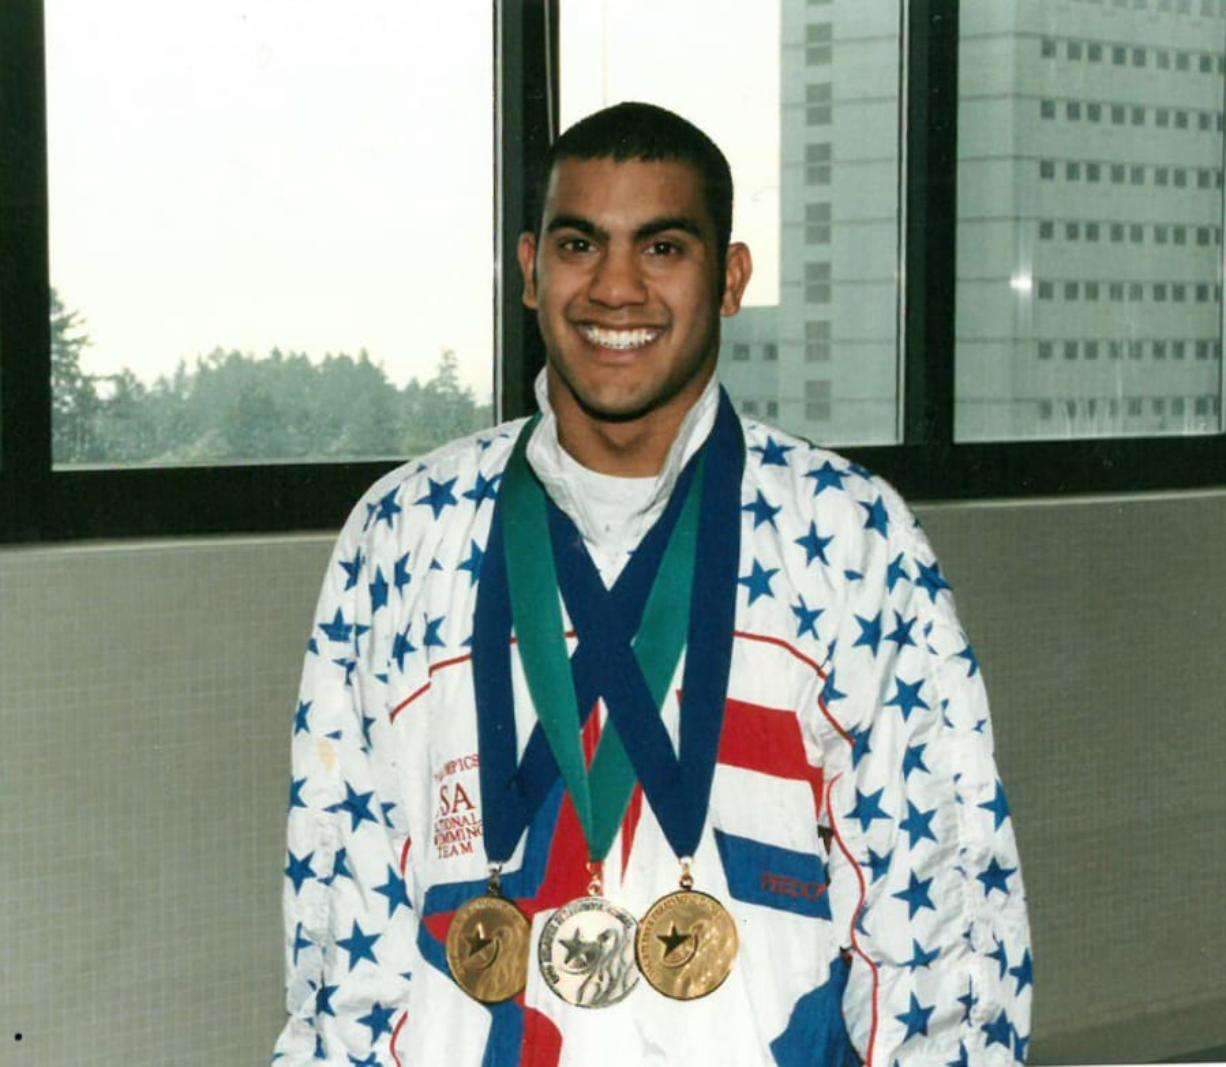 Aaron Paulson poses for a photo at Shriners Hospital holding his medals: two golds and a bronze, which he won for swimming at the 1996 Paralympics in Atlanta, Ga. A patient himself there from age 1 to 21, he makes visits to the hospital to share his story with children. Contributed photo